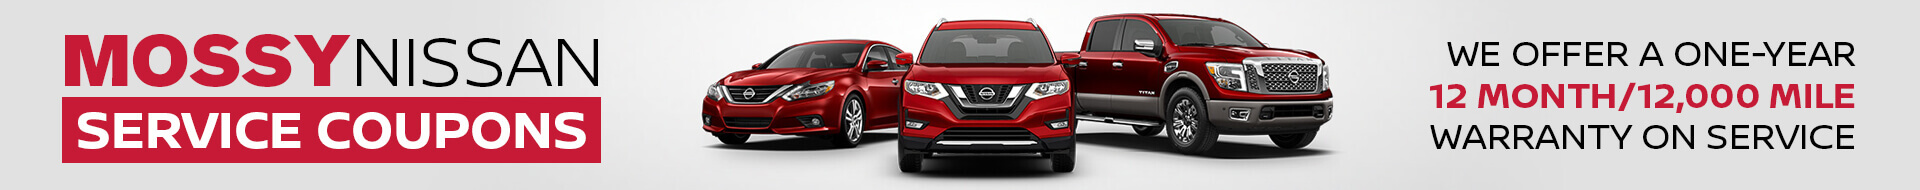 Mossy Nissan Service Coupons